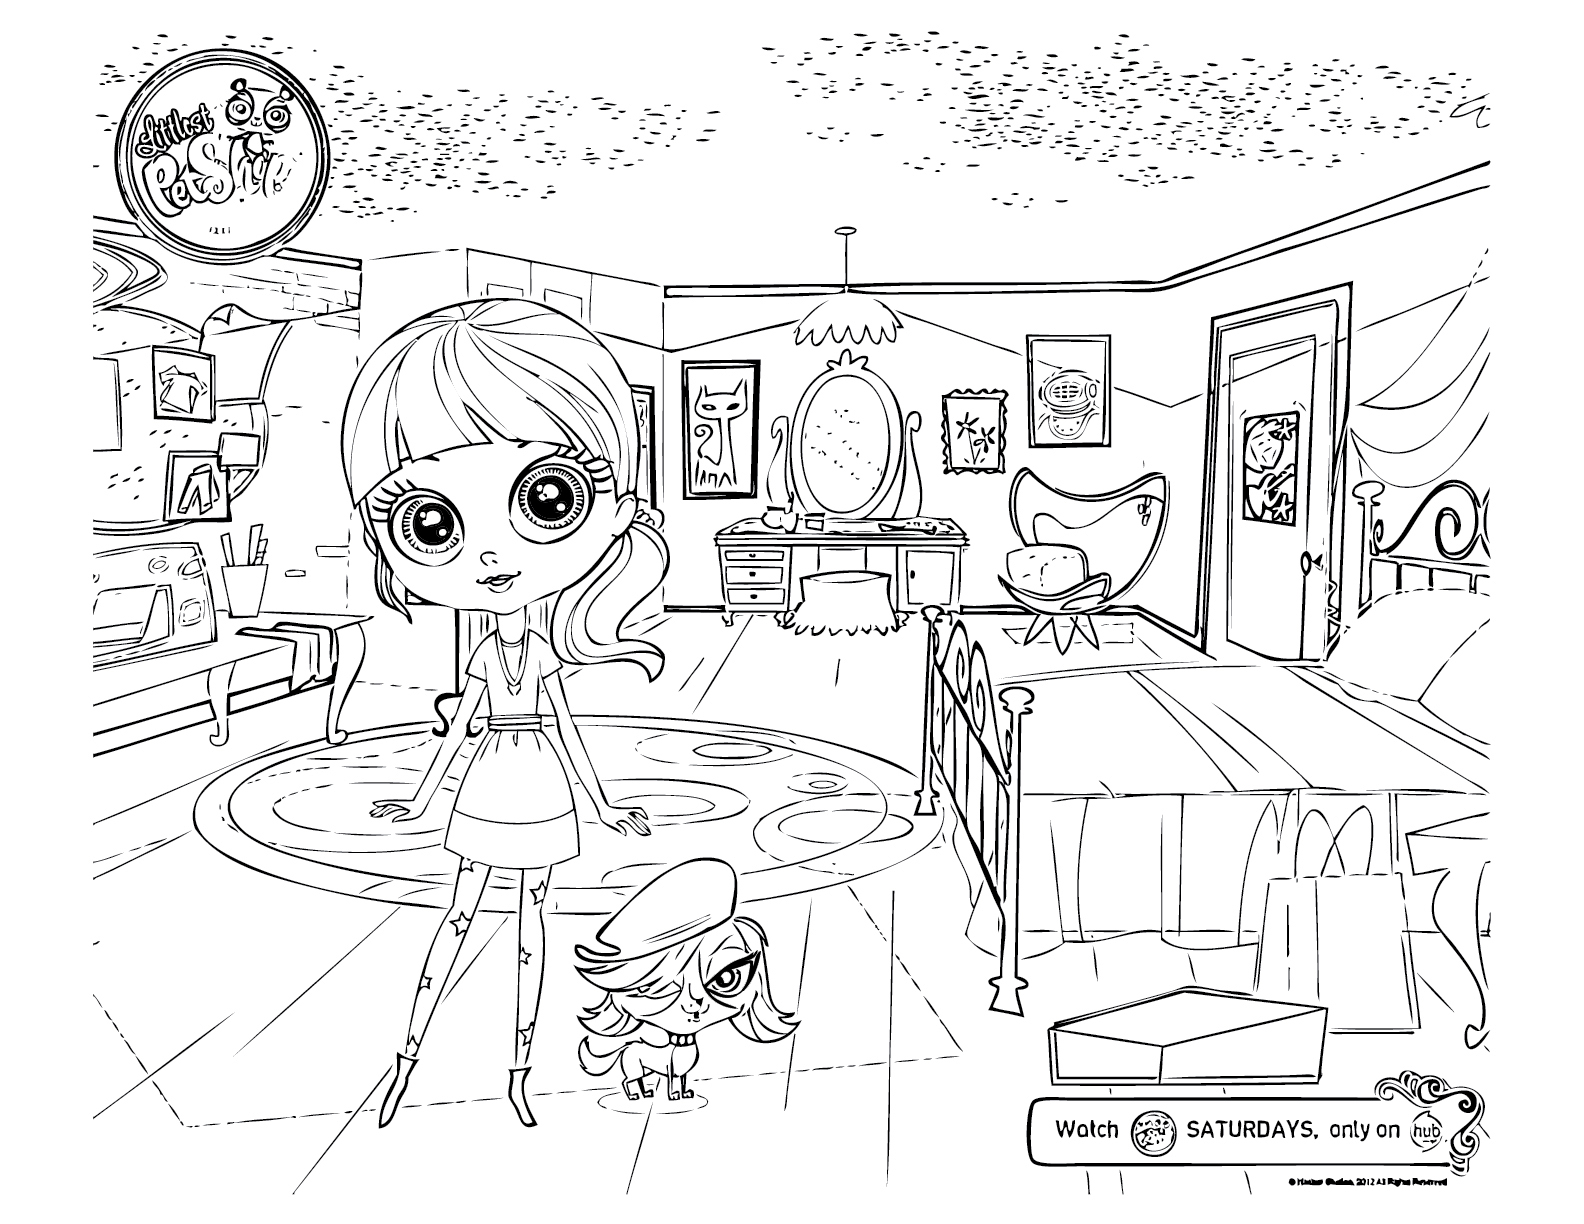 Littlest Pet Shop Zoe Coloring Pages Littlest Pet Shop colo...